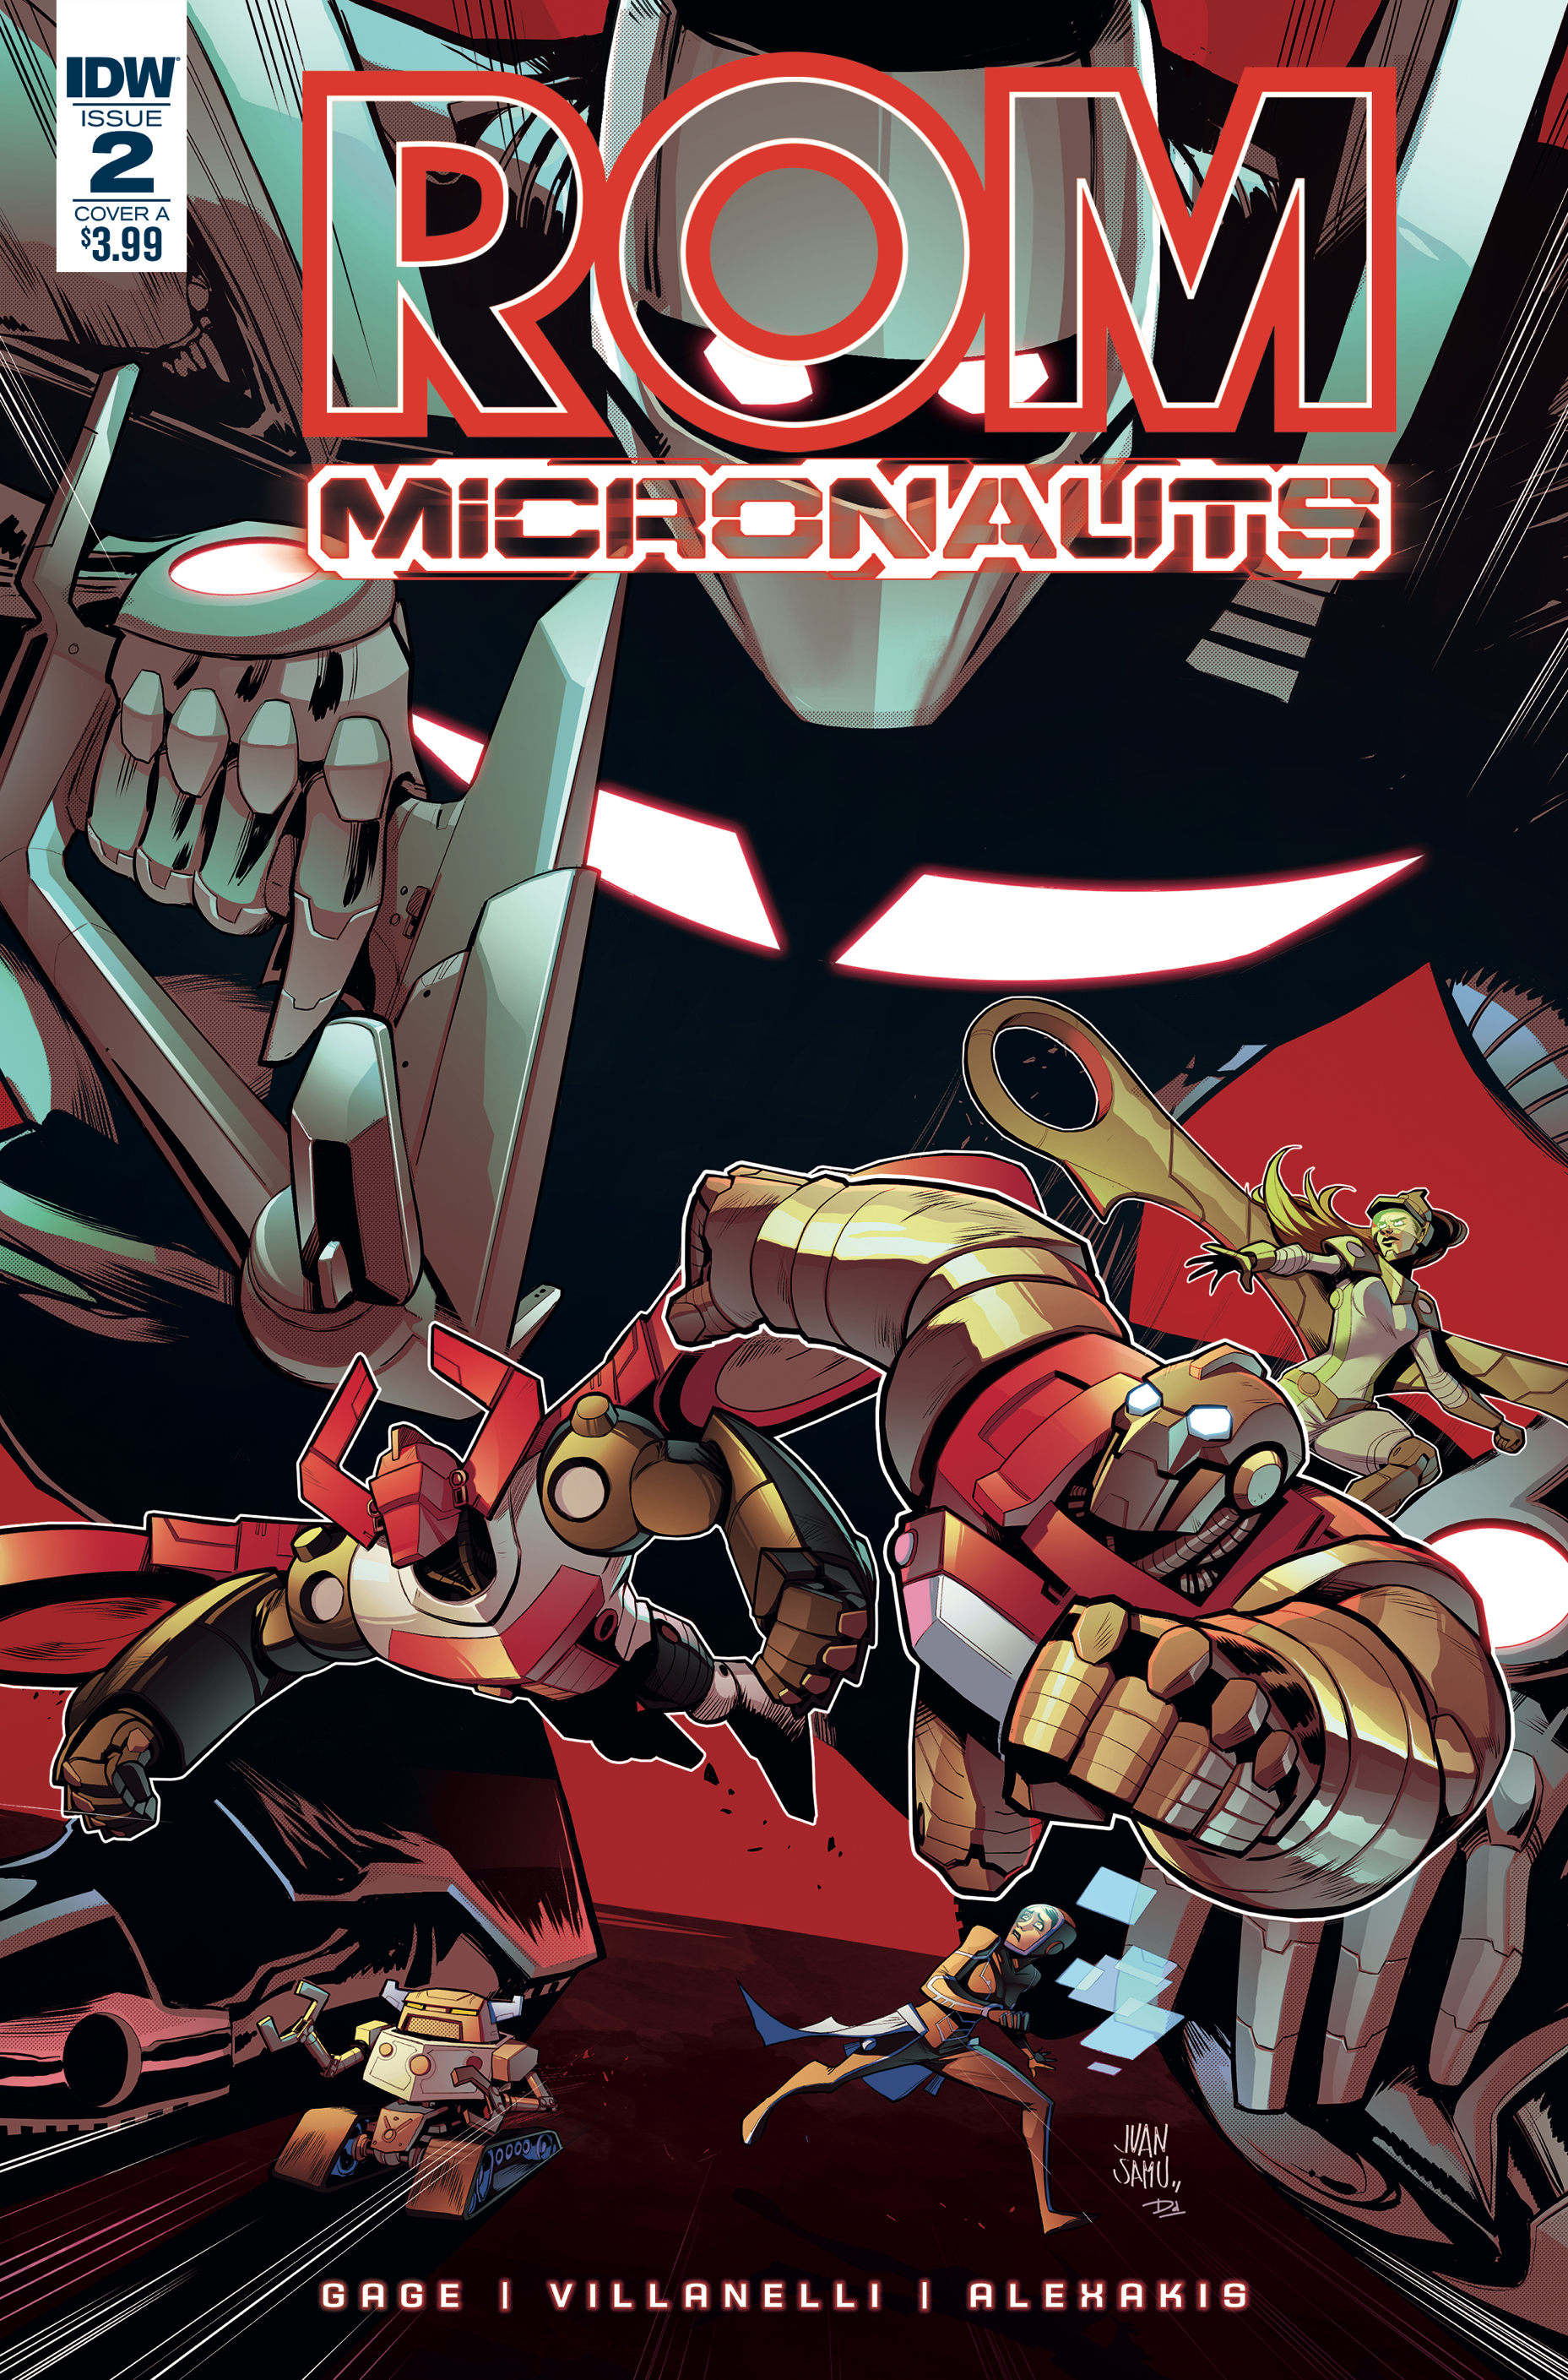 ROM & THE MICRONAUTS #2 (OF 5) CVR A SAMU